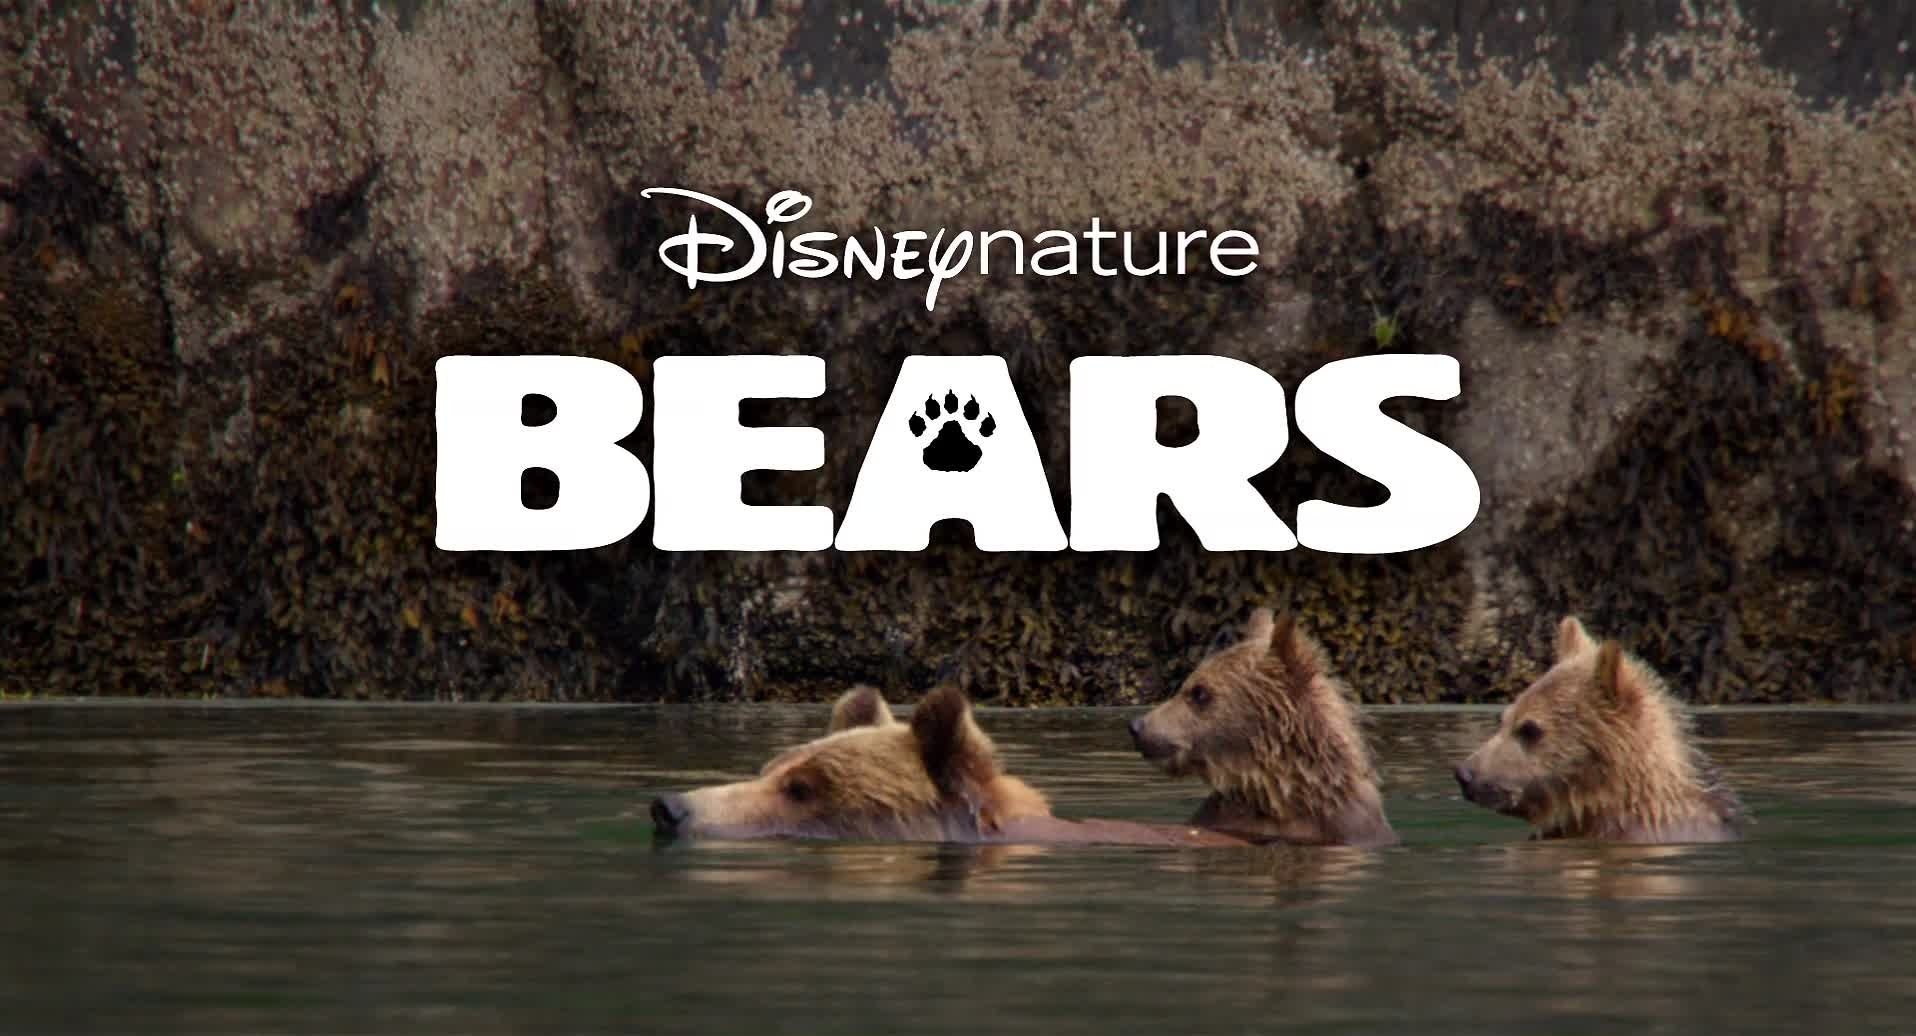 Disneynature Bears Trailer